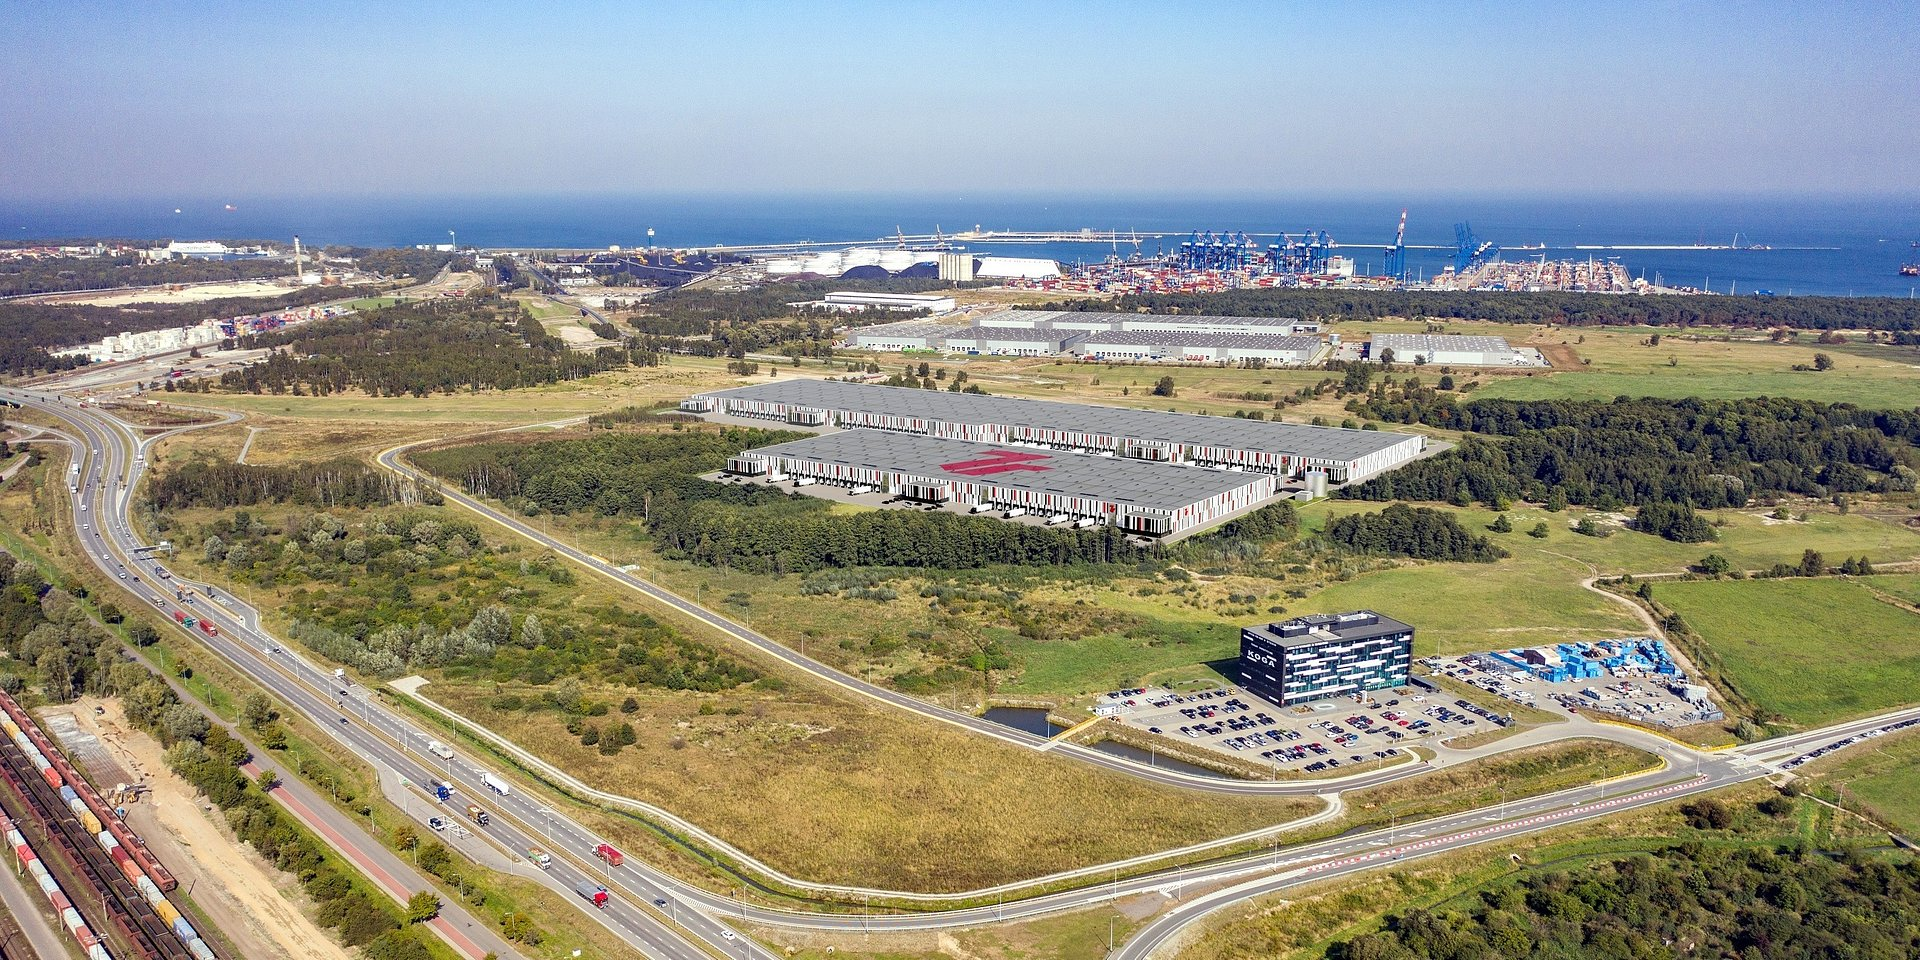 7R plans investment at the port and DCT terminal in Gdańsk, Poland